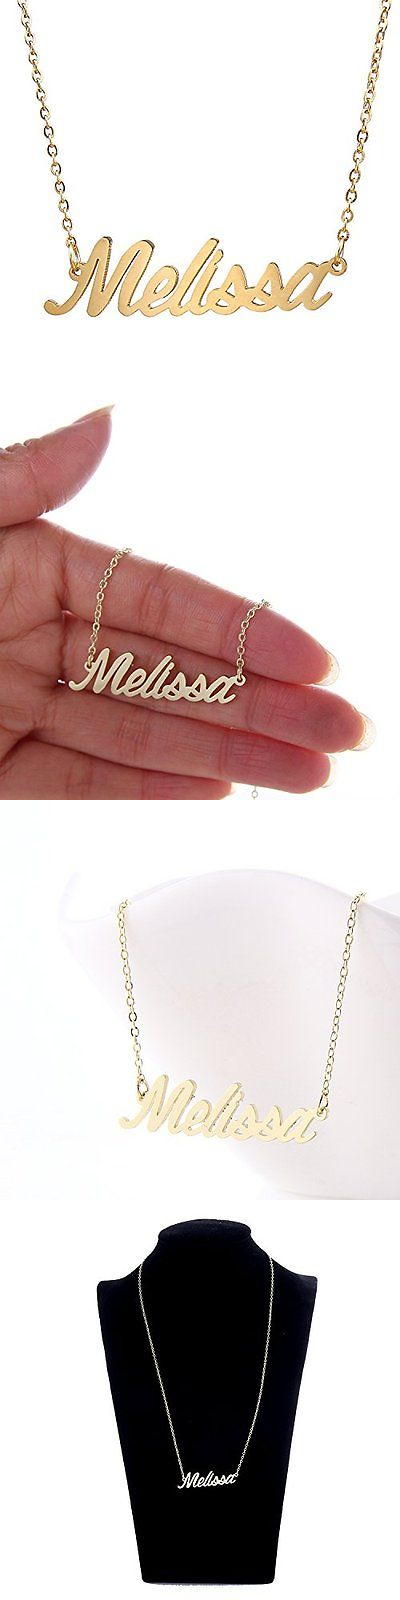 0d9842a04232a Jewelry 175526: Aolo Little Personalized Name Necklace Melissa ...